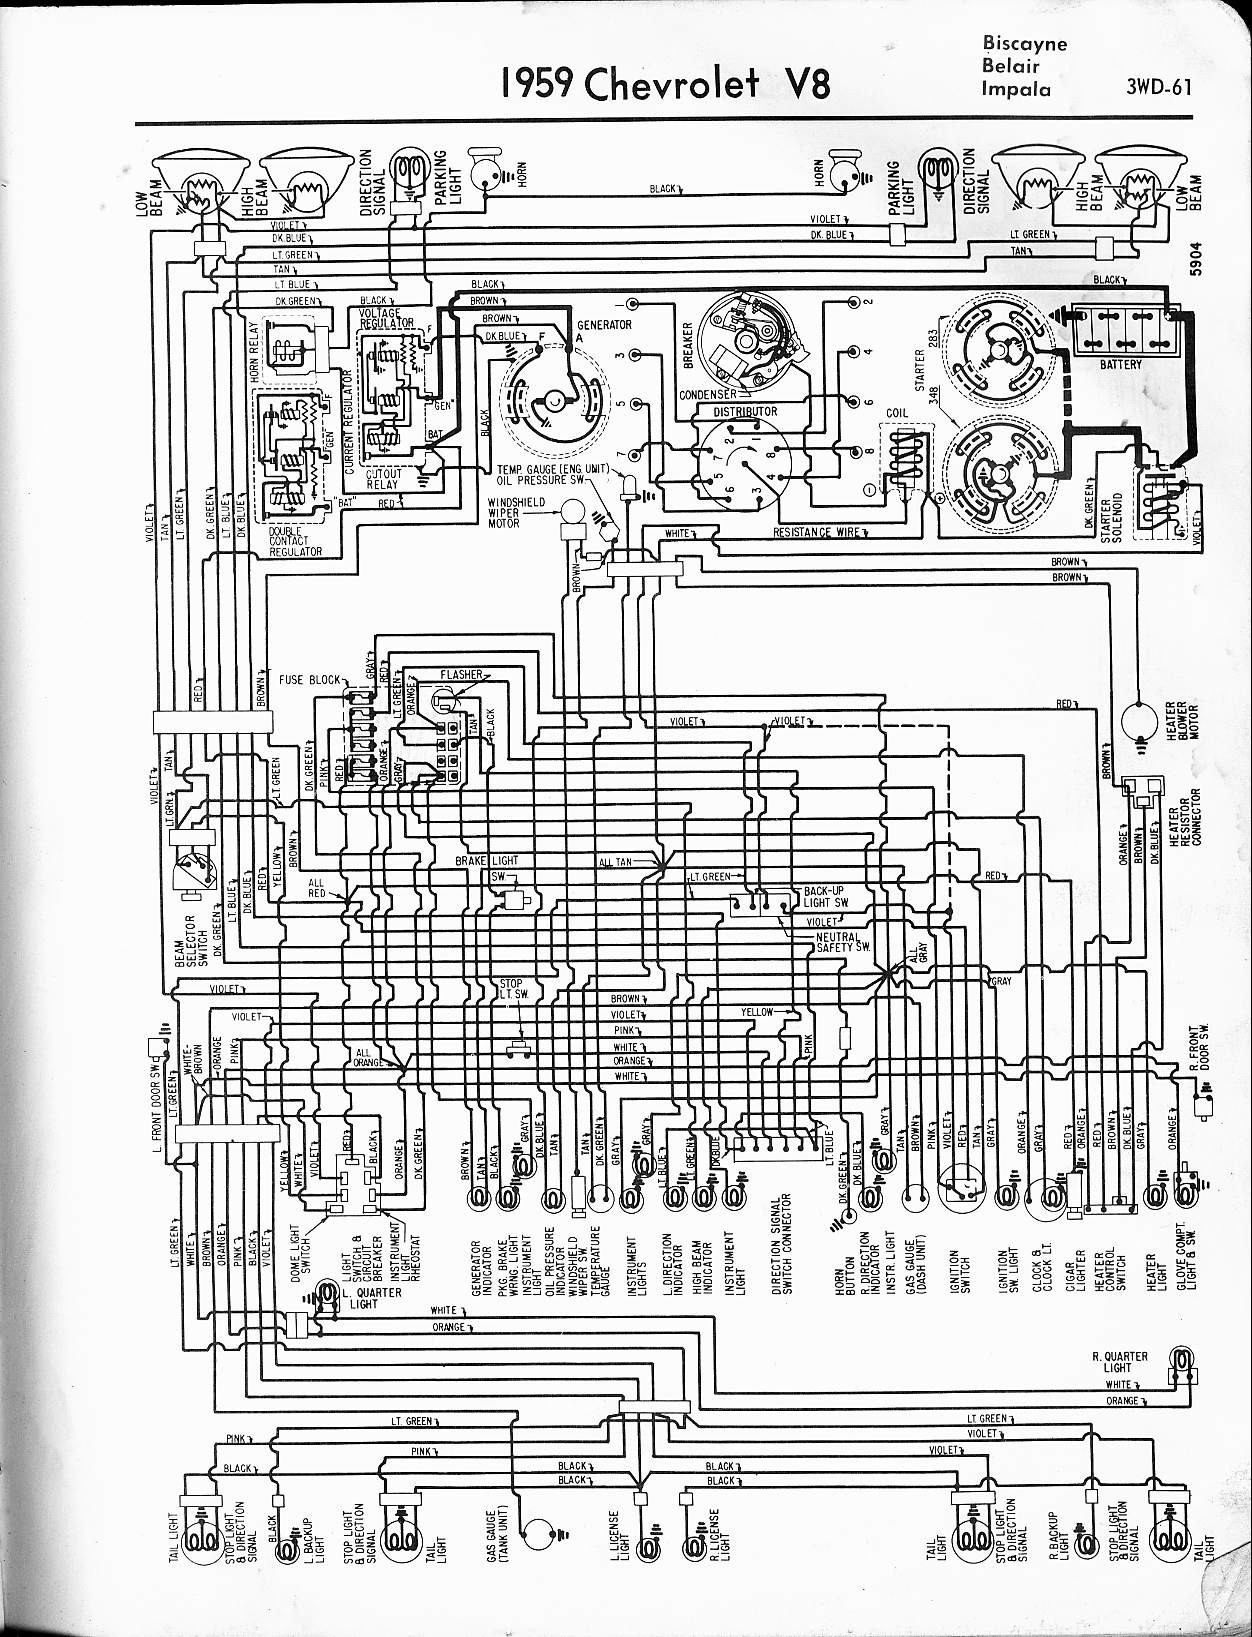 2000 Chevy Impala Engine Diagram 57 65 Chevy Wiring Diagrams Of 2000 Chevy Impala Engine Diagram